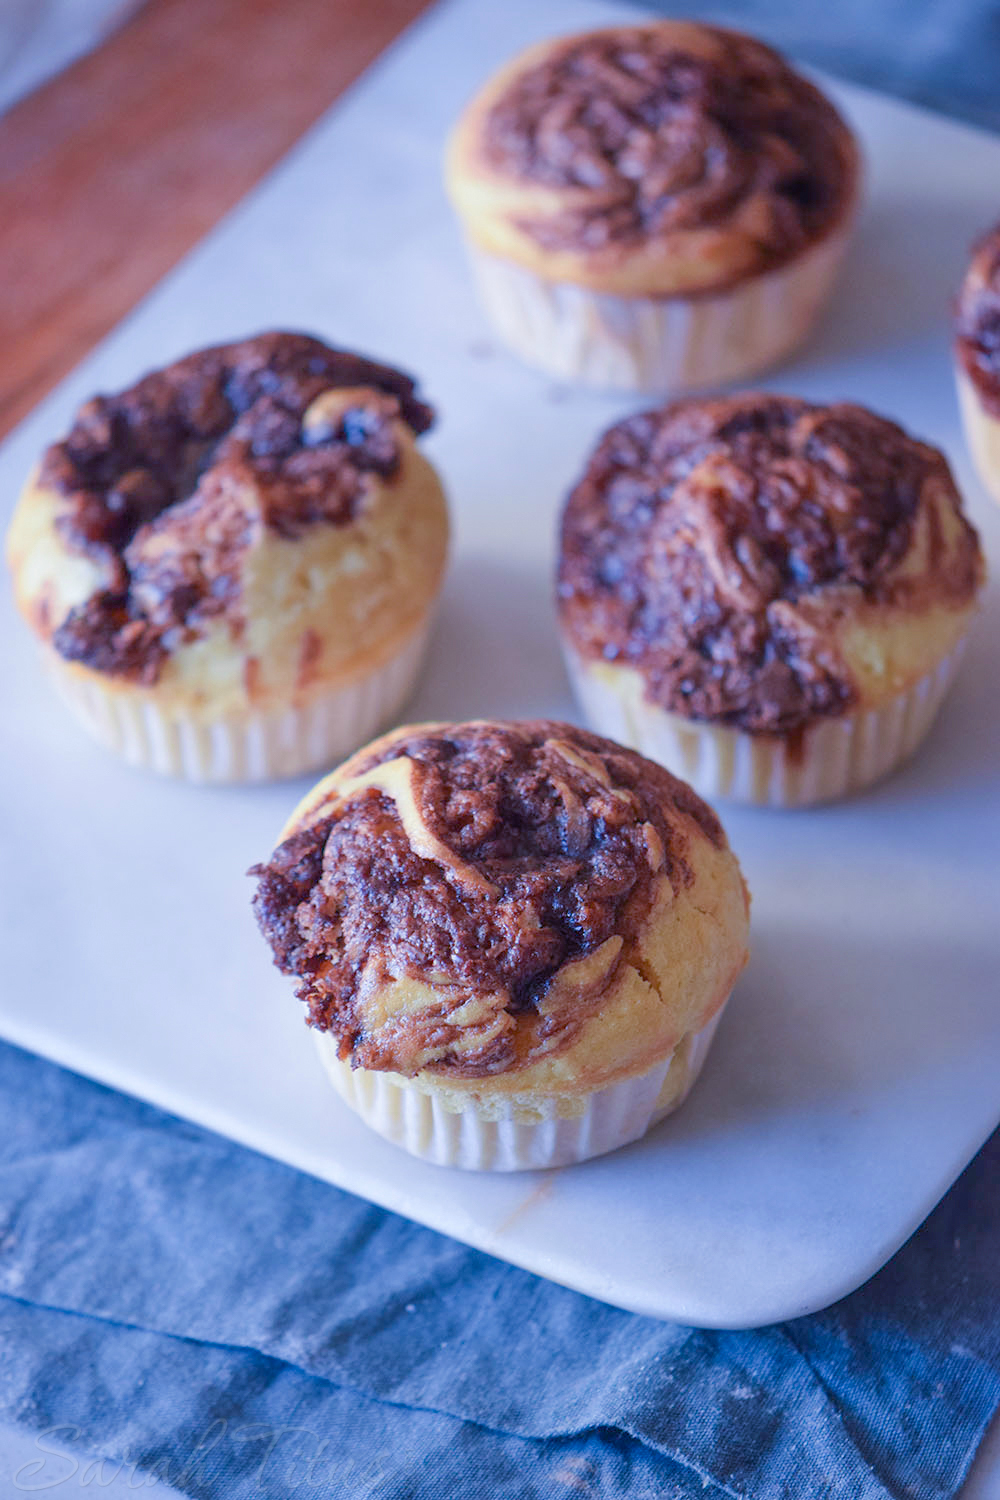 Freshly baked Nutella Swirl Muffins on a white cutting board on a blue cloth and wood table